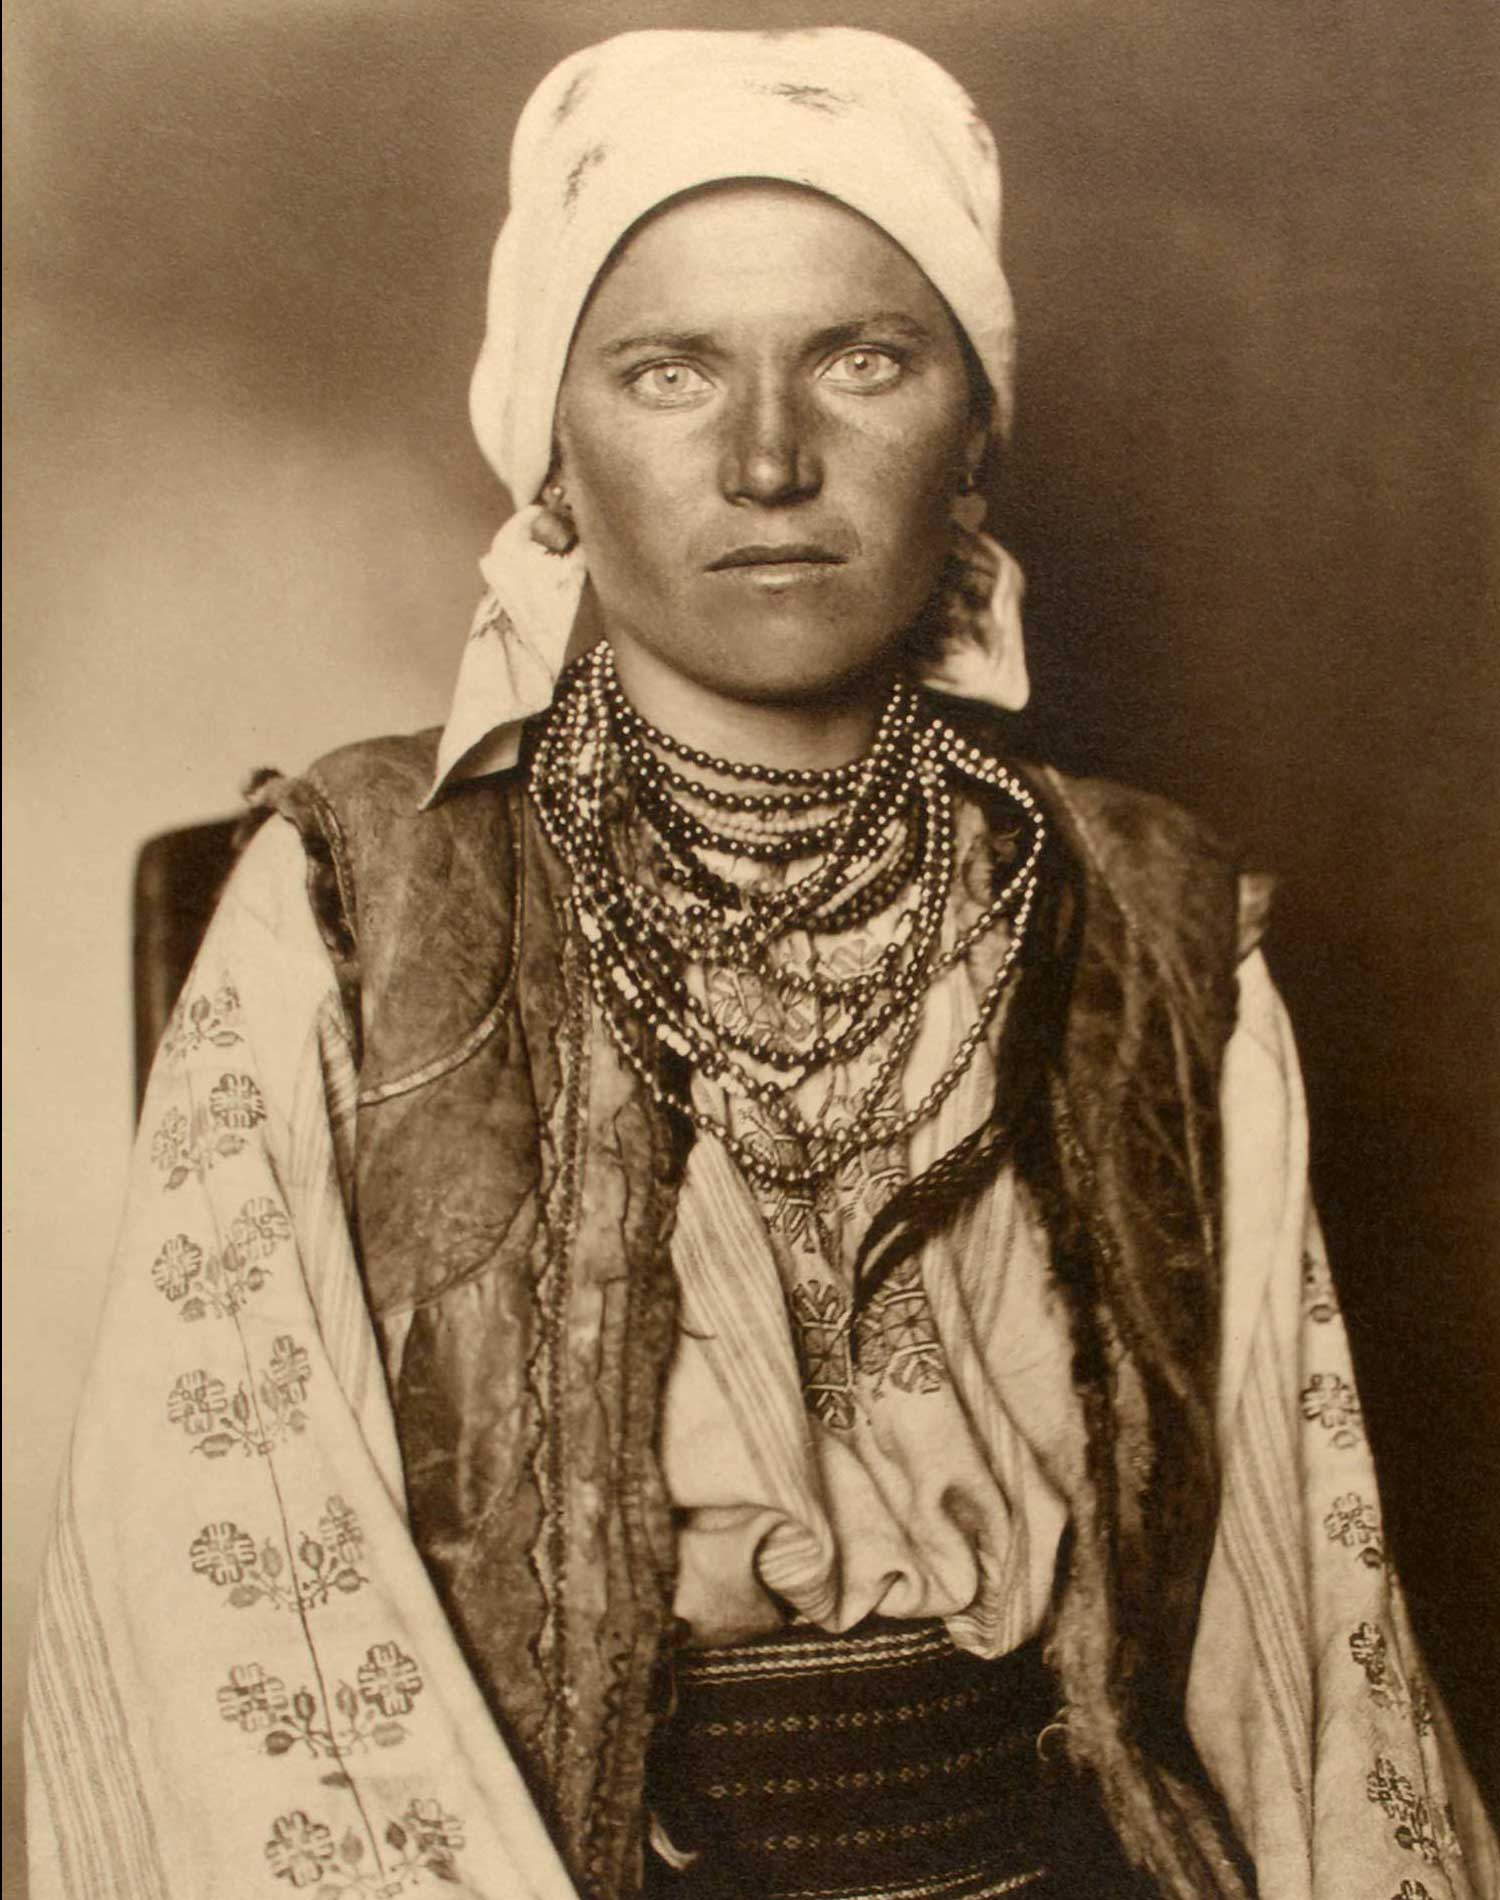 'Ruthenian woman' (1906)